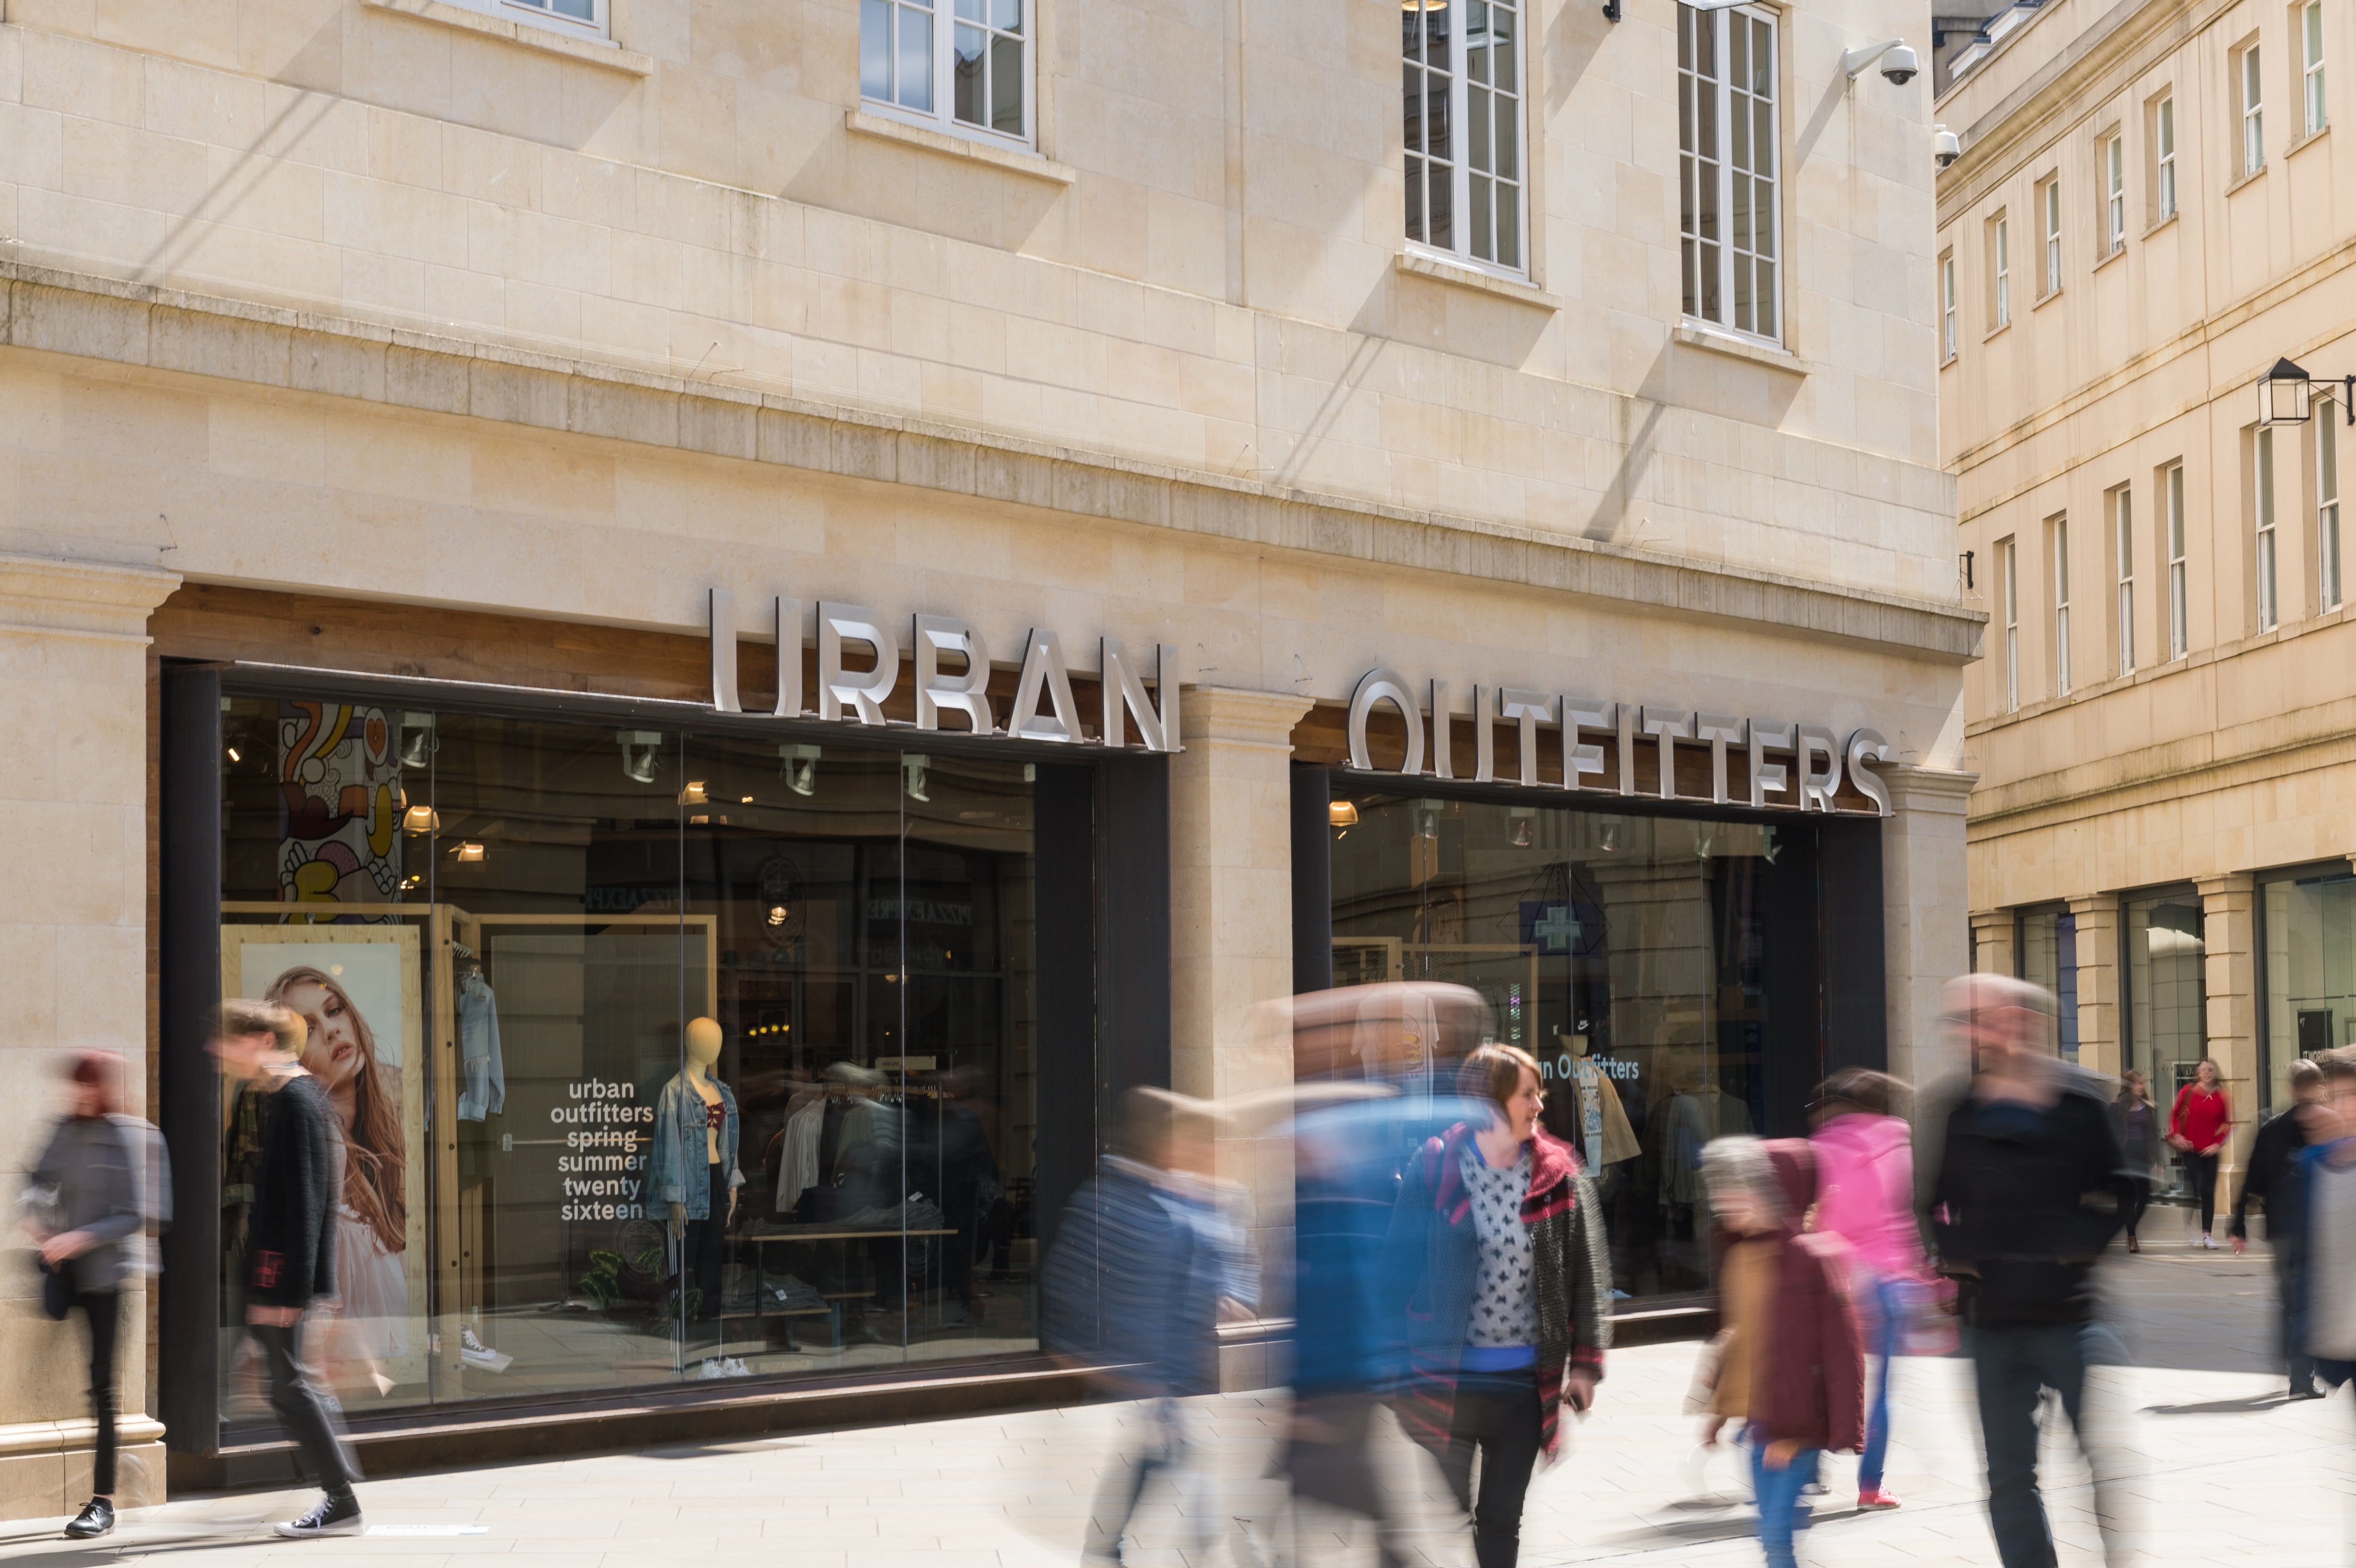 shop front of urban outfitters